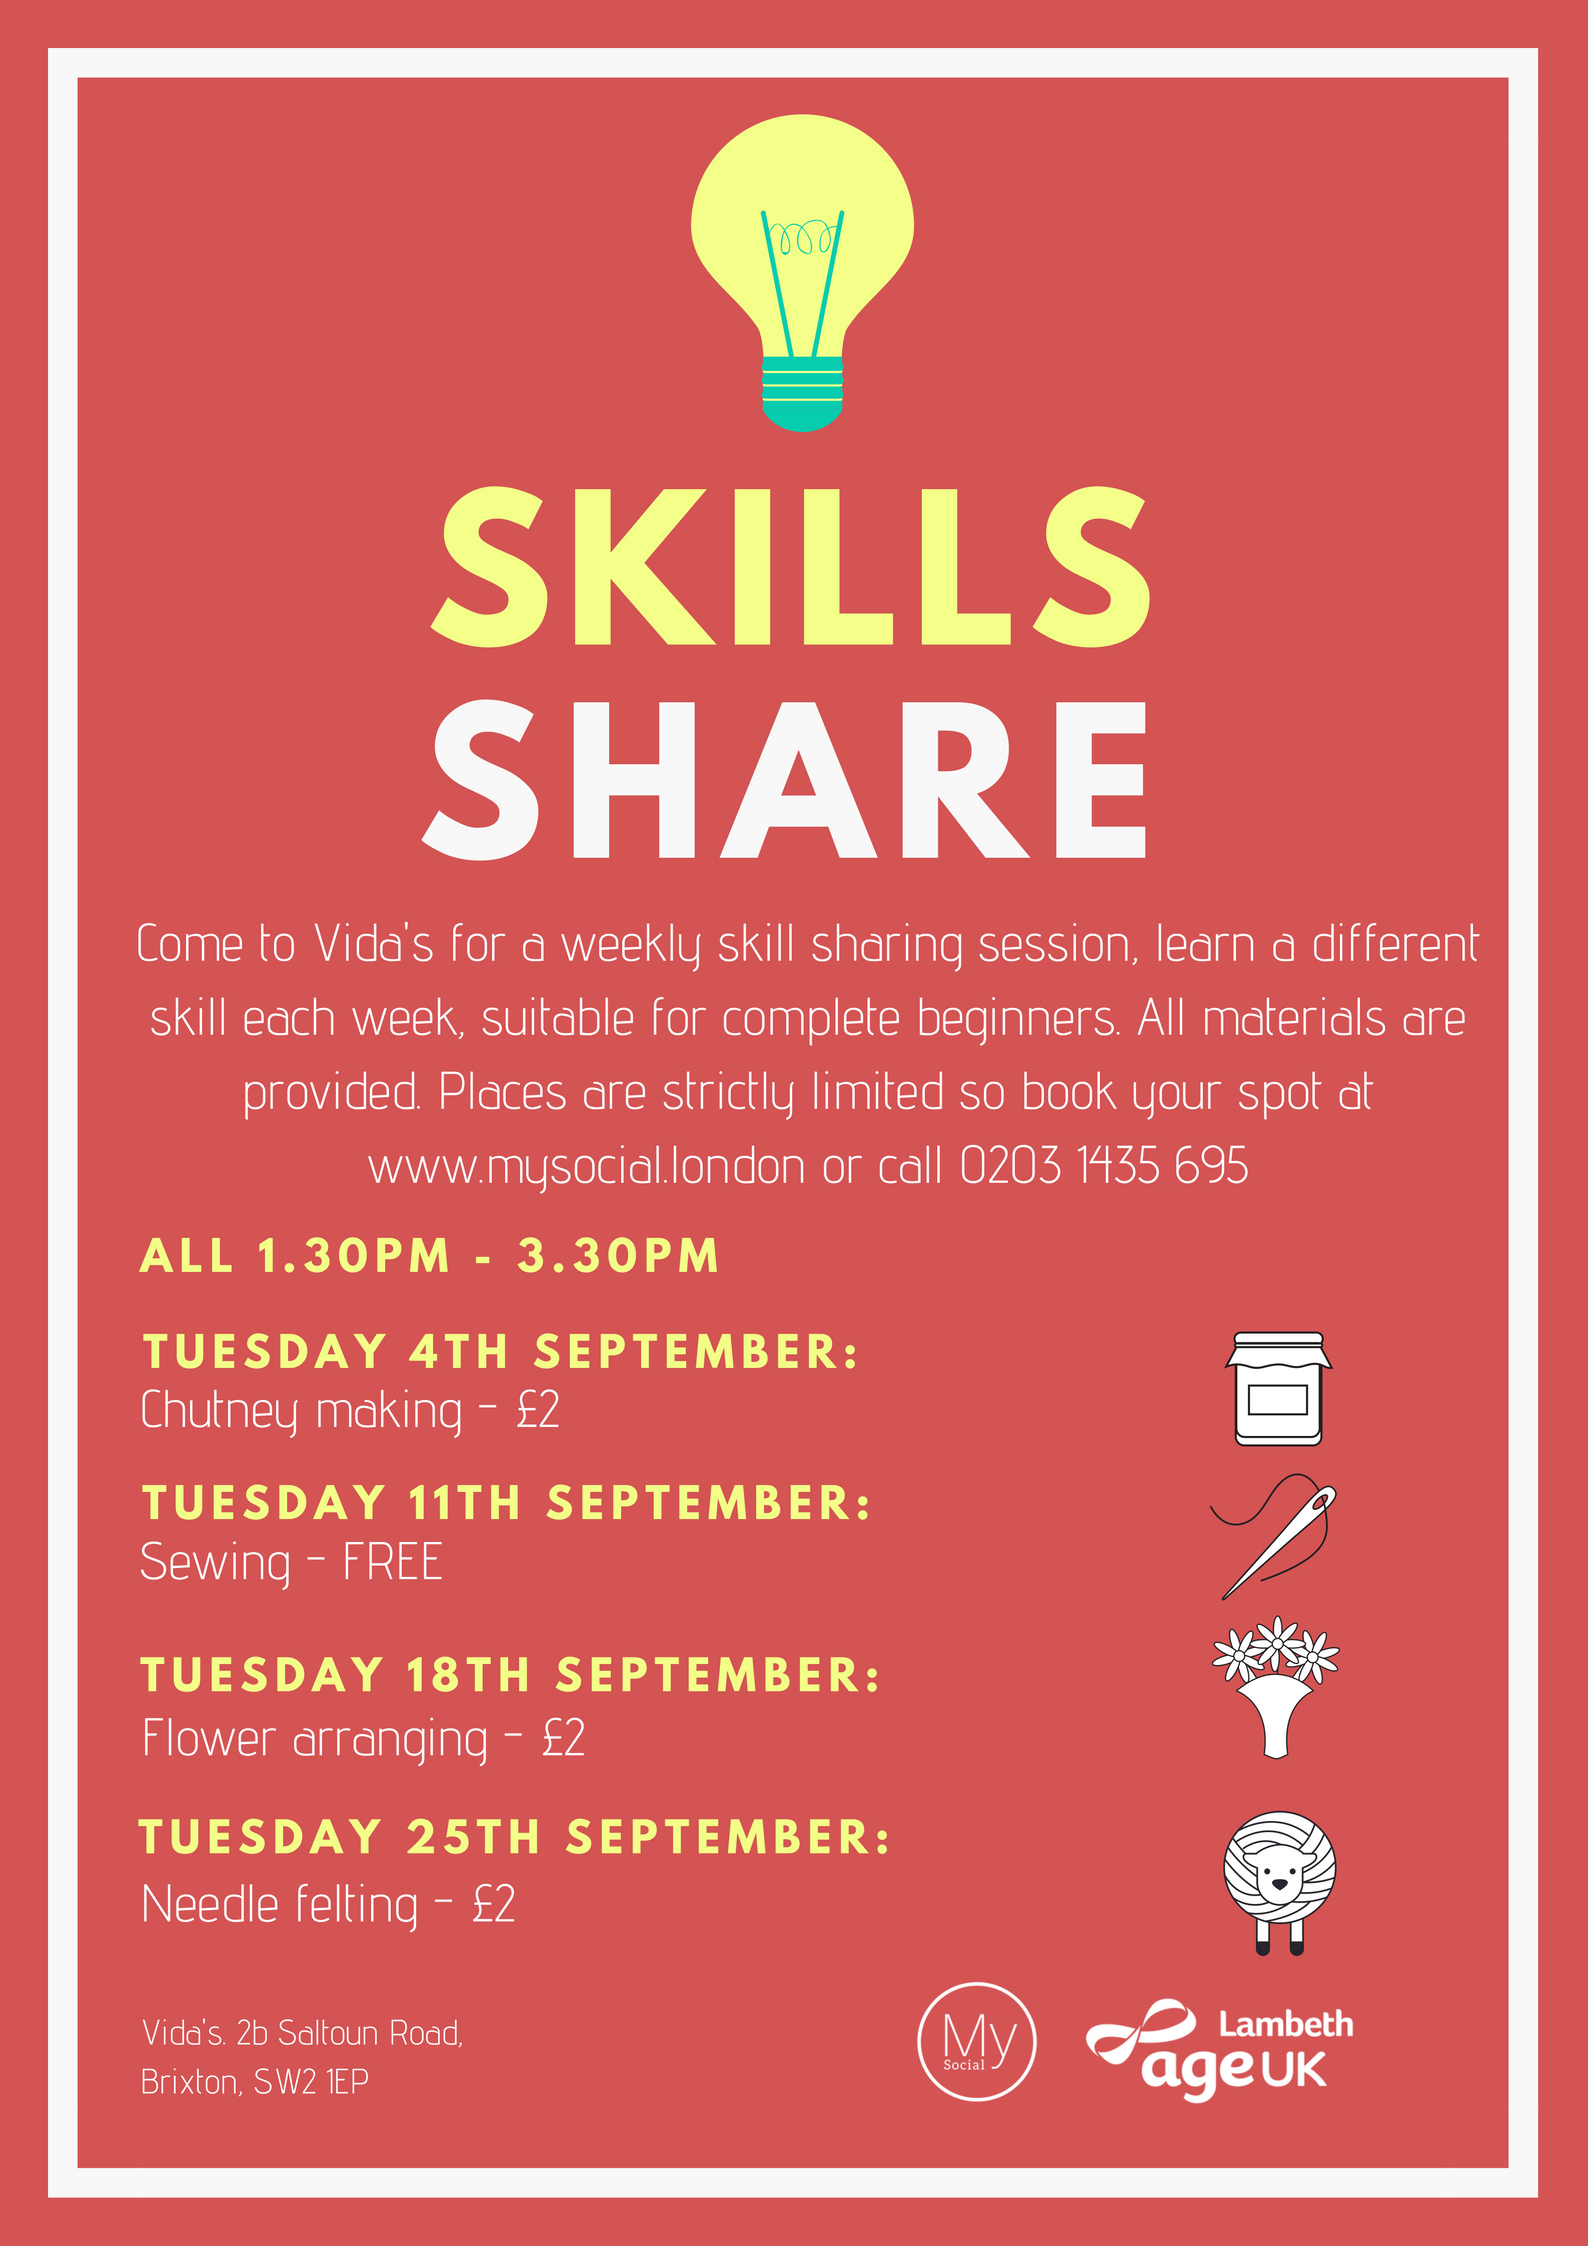 Skills share, every Tuesday afternoon starting in September. Chutney making, sewing, flower arranging, needle felting in september. Click for details of the first session.